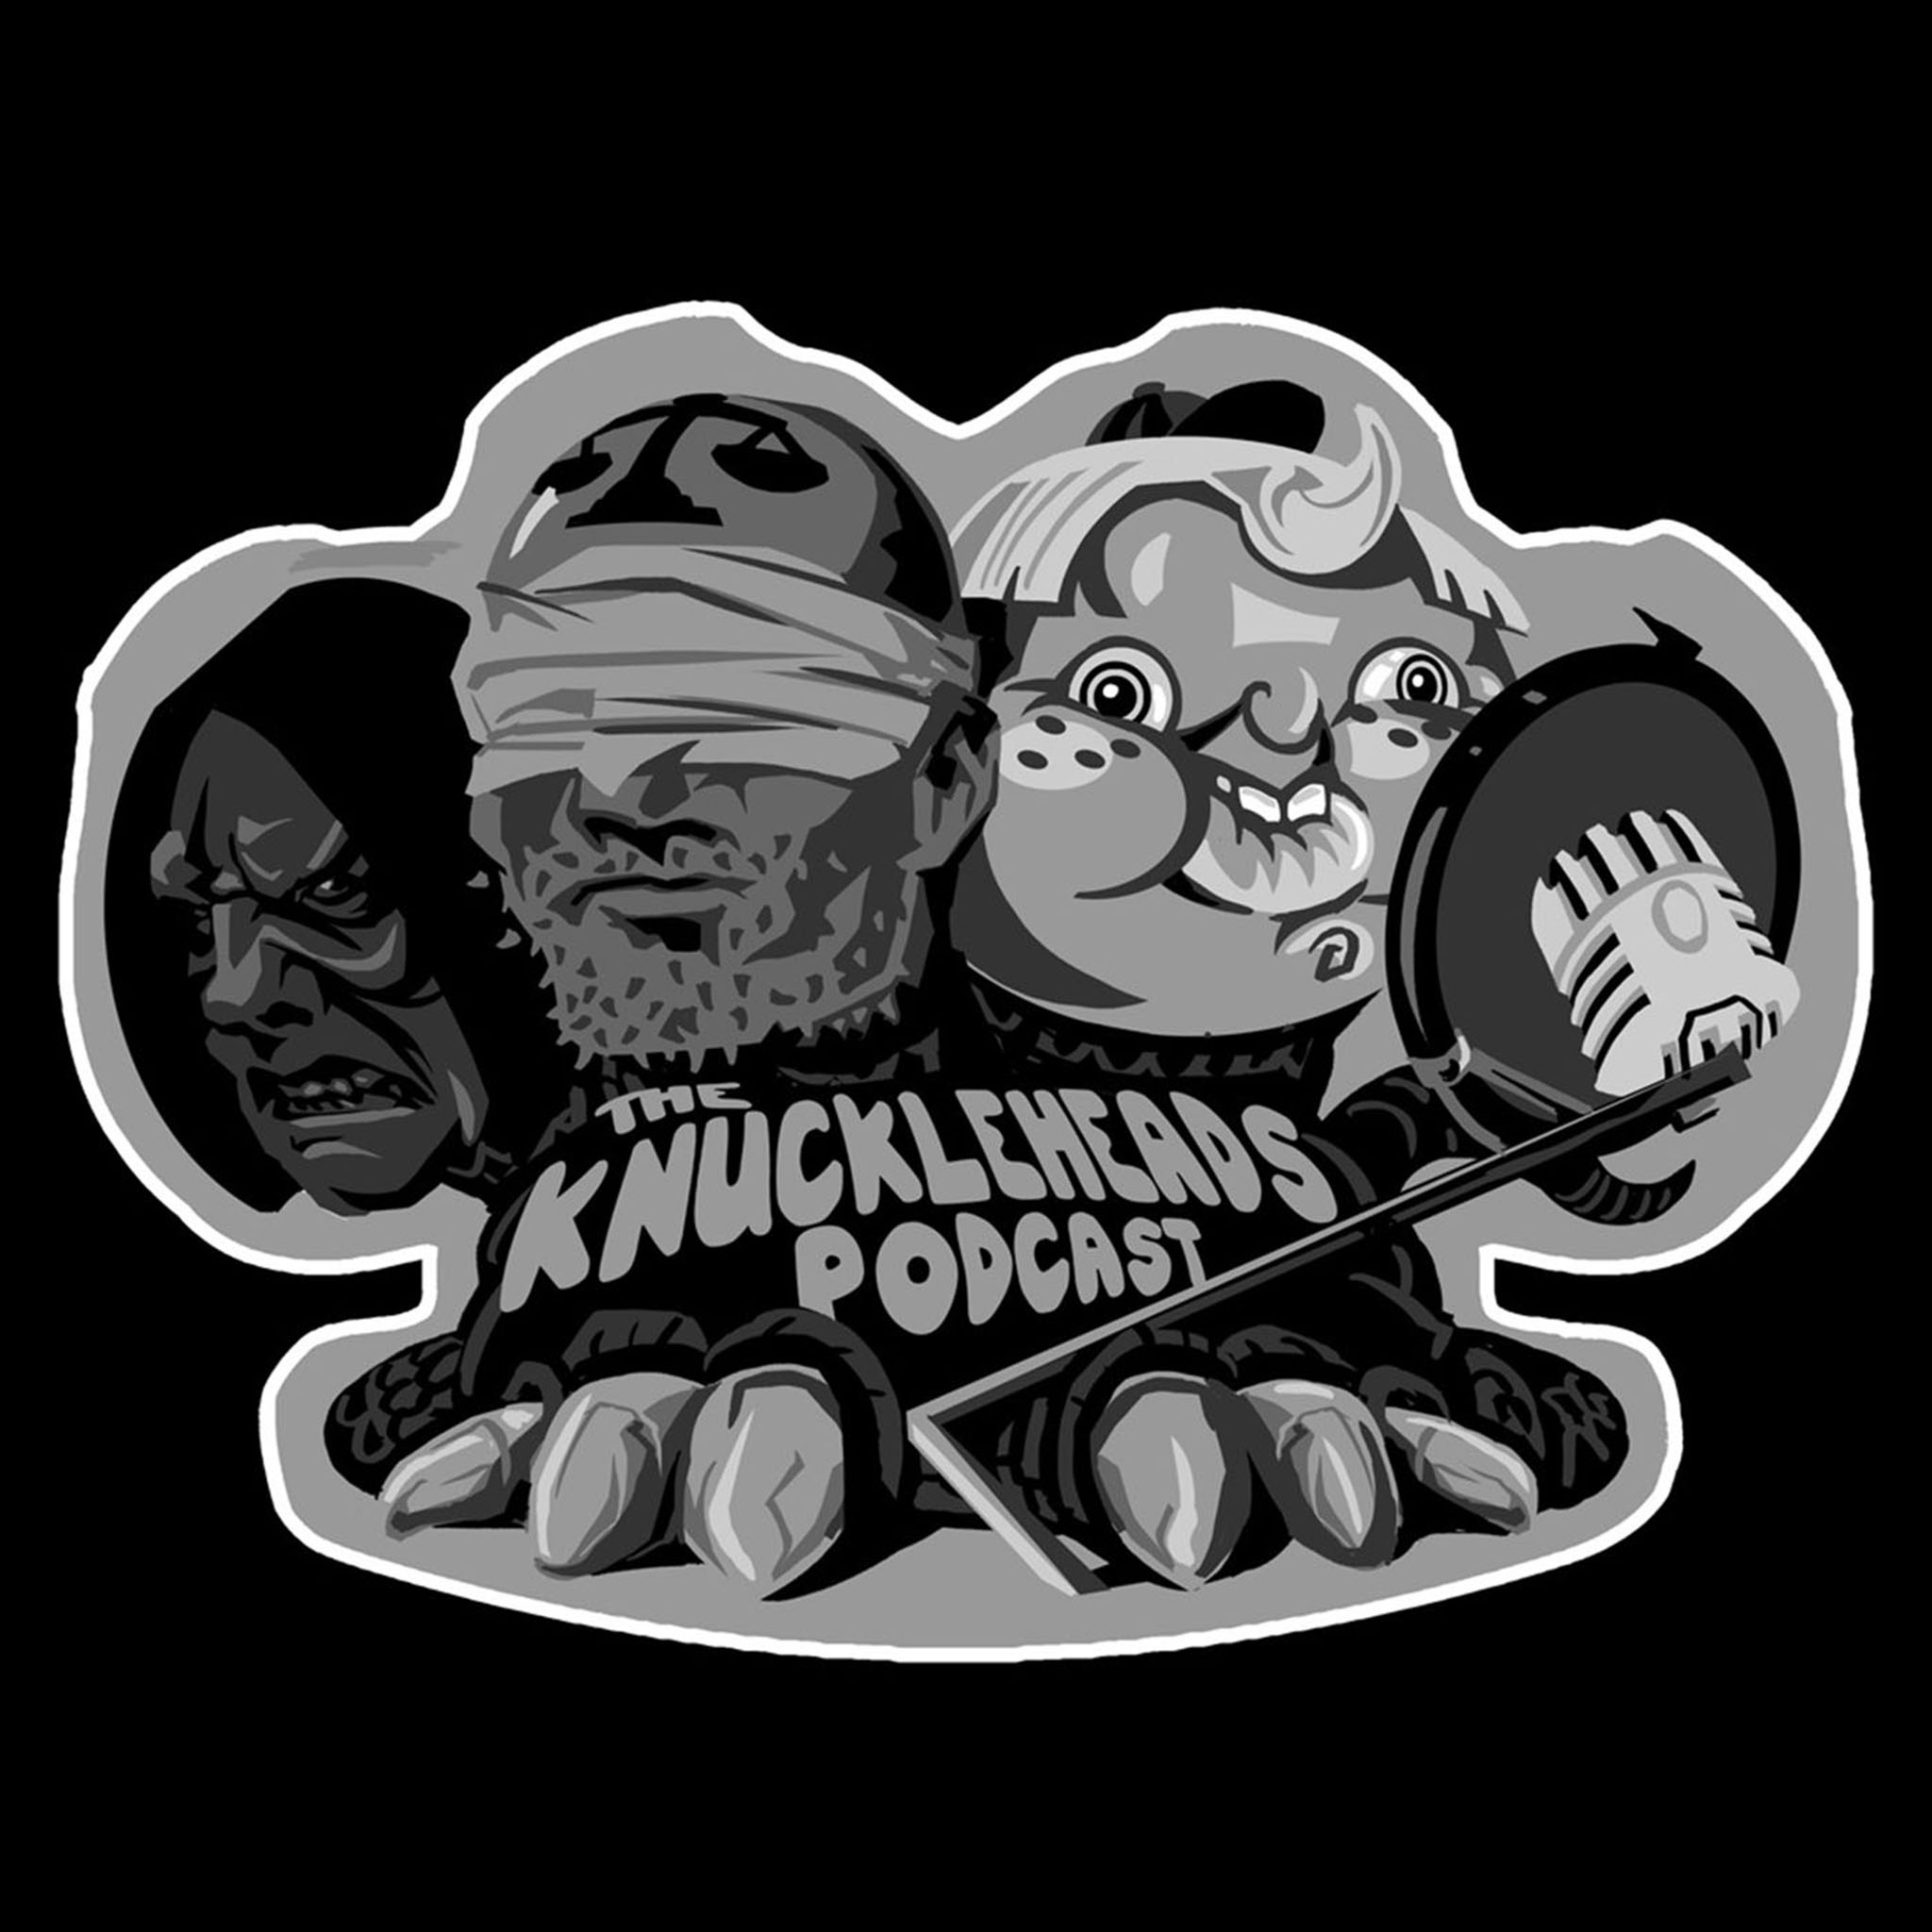 TheKnuckleHeadsPodcast